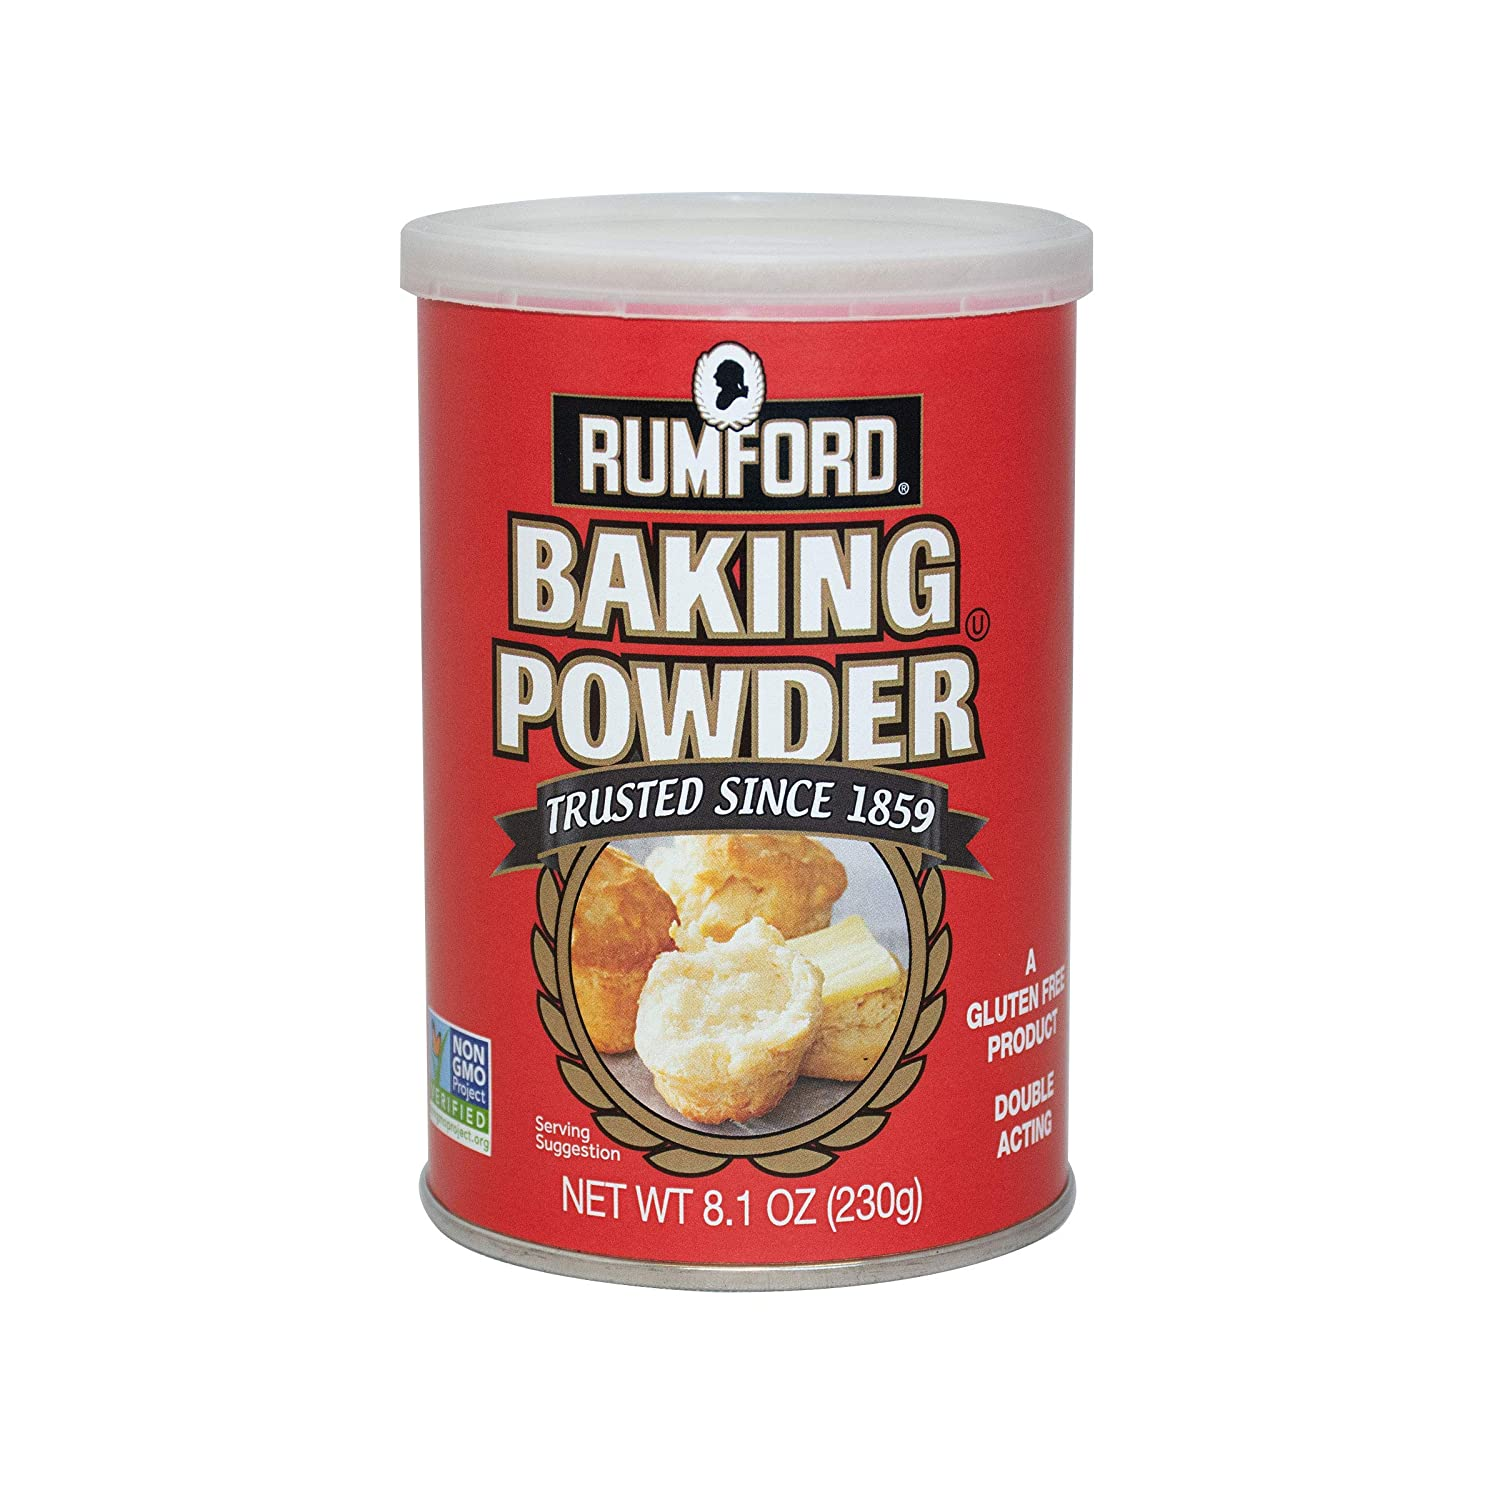 Rumford, Double Action Baking Powder